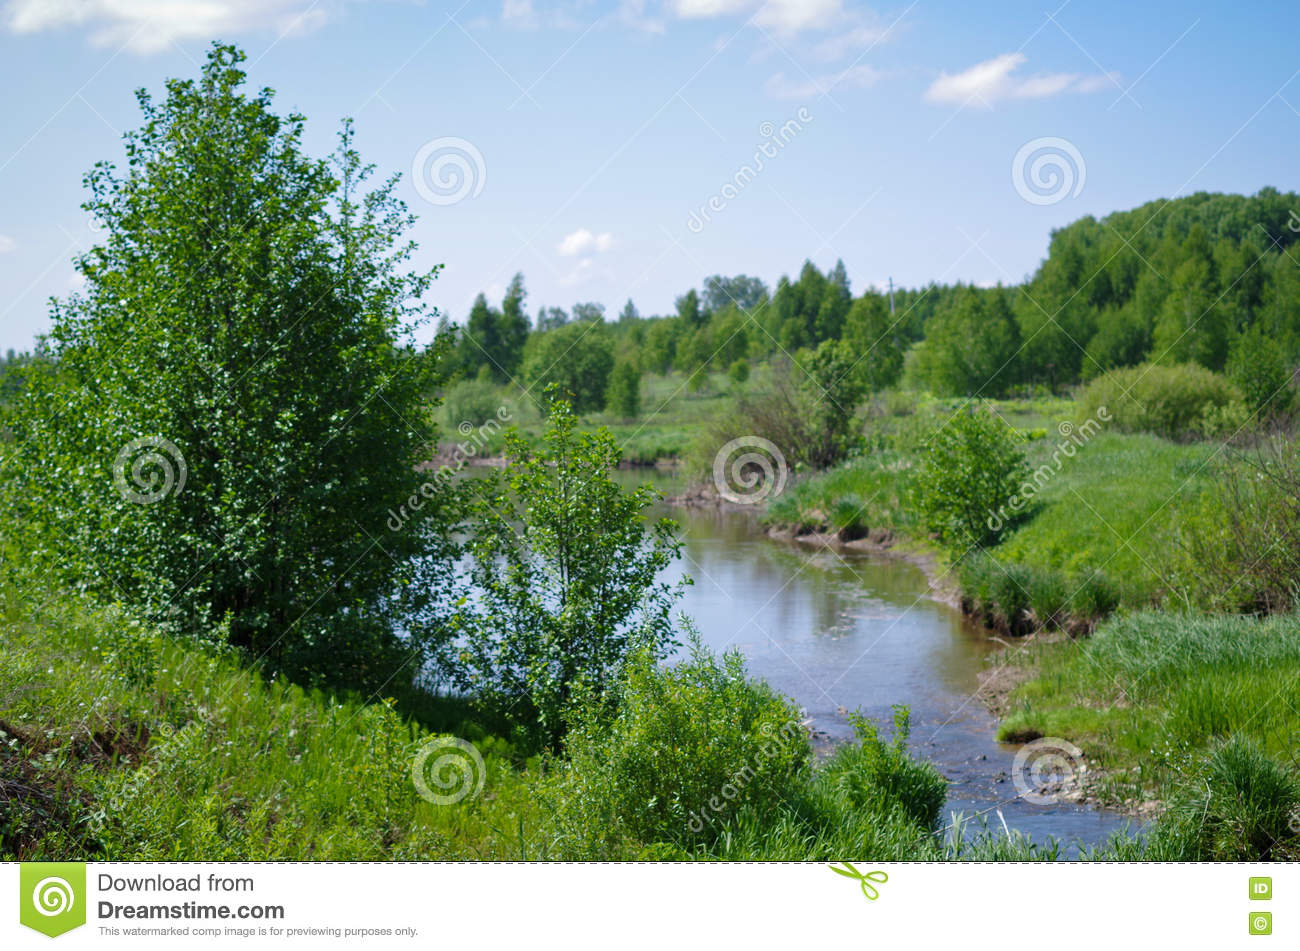 How do you know the rivers and lakes of the Tula region